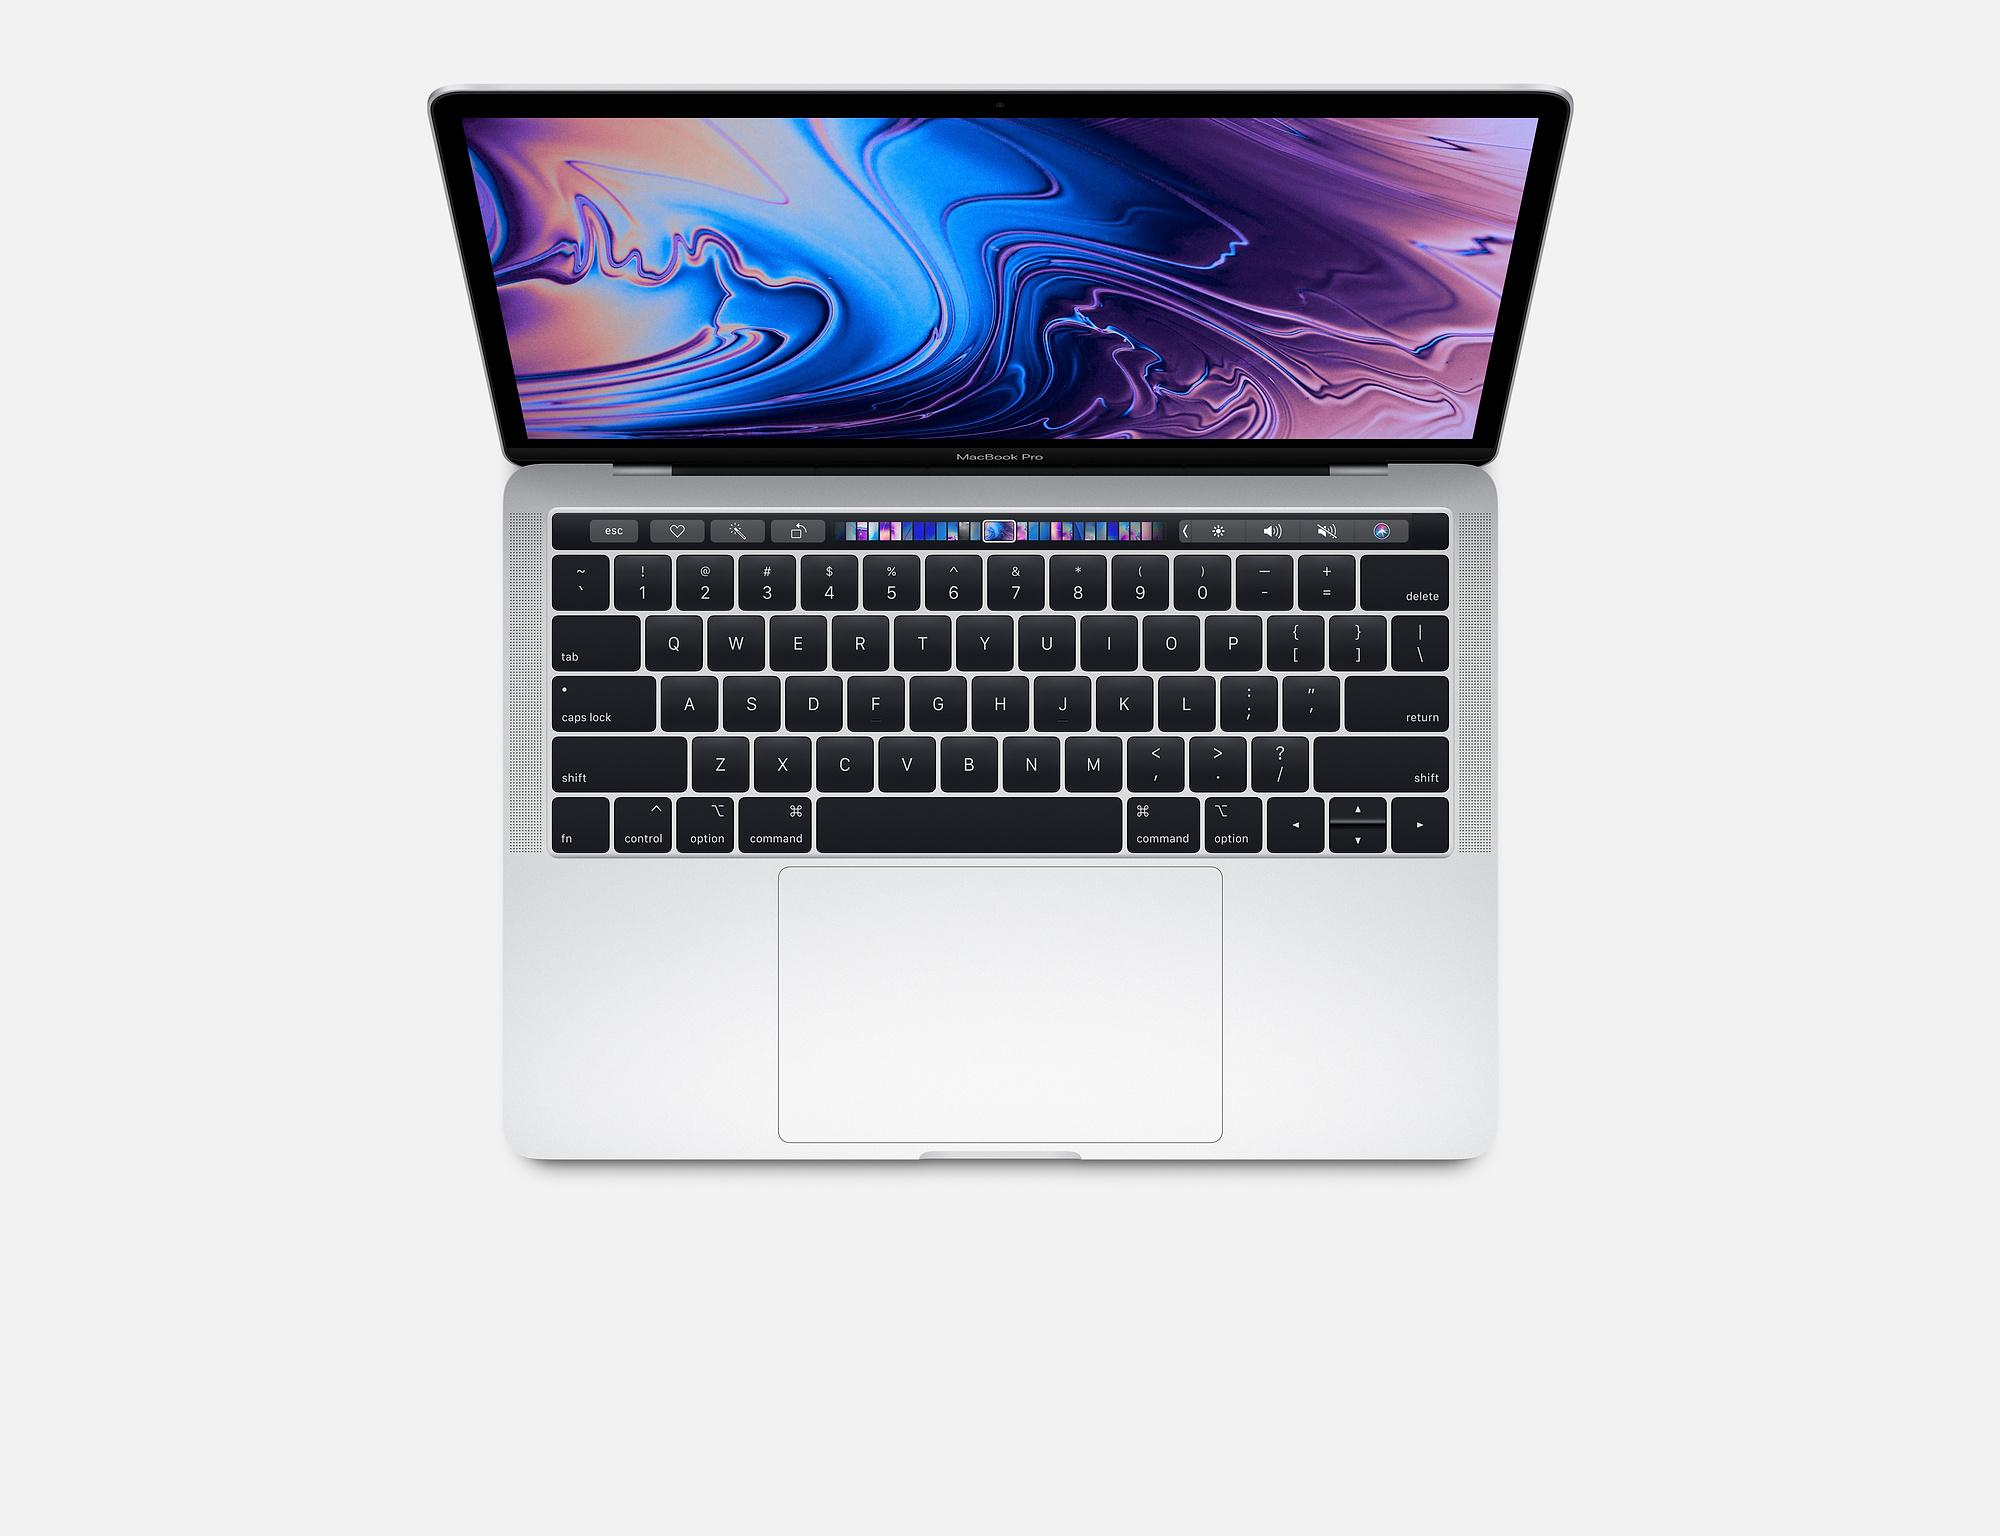 Apple MacBook Pro 13-inch with Touch Bar: 2.3GHz quad-core 8th-generation IntelCorei5, 256GB (2018)